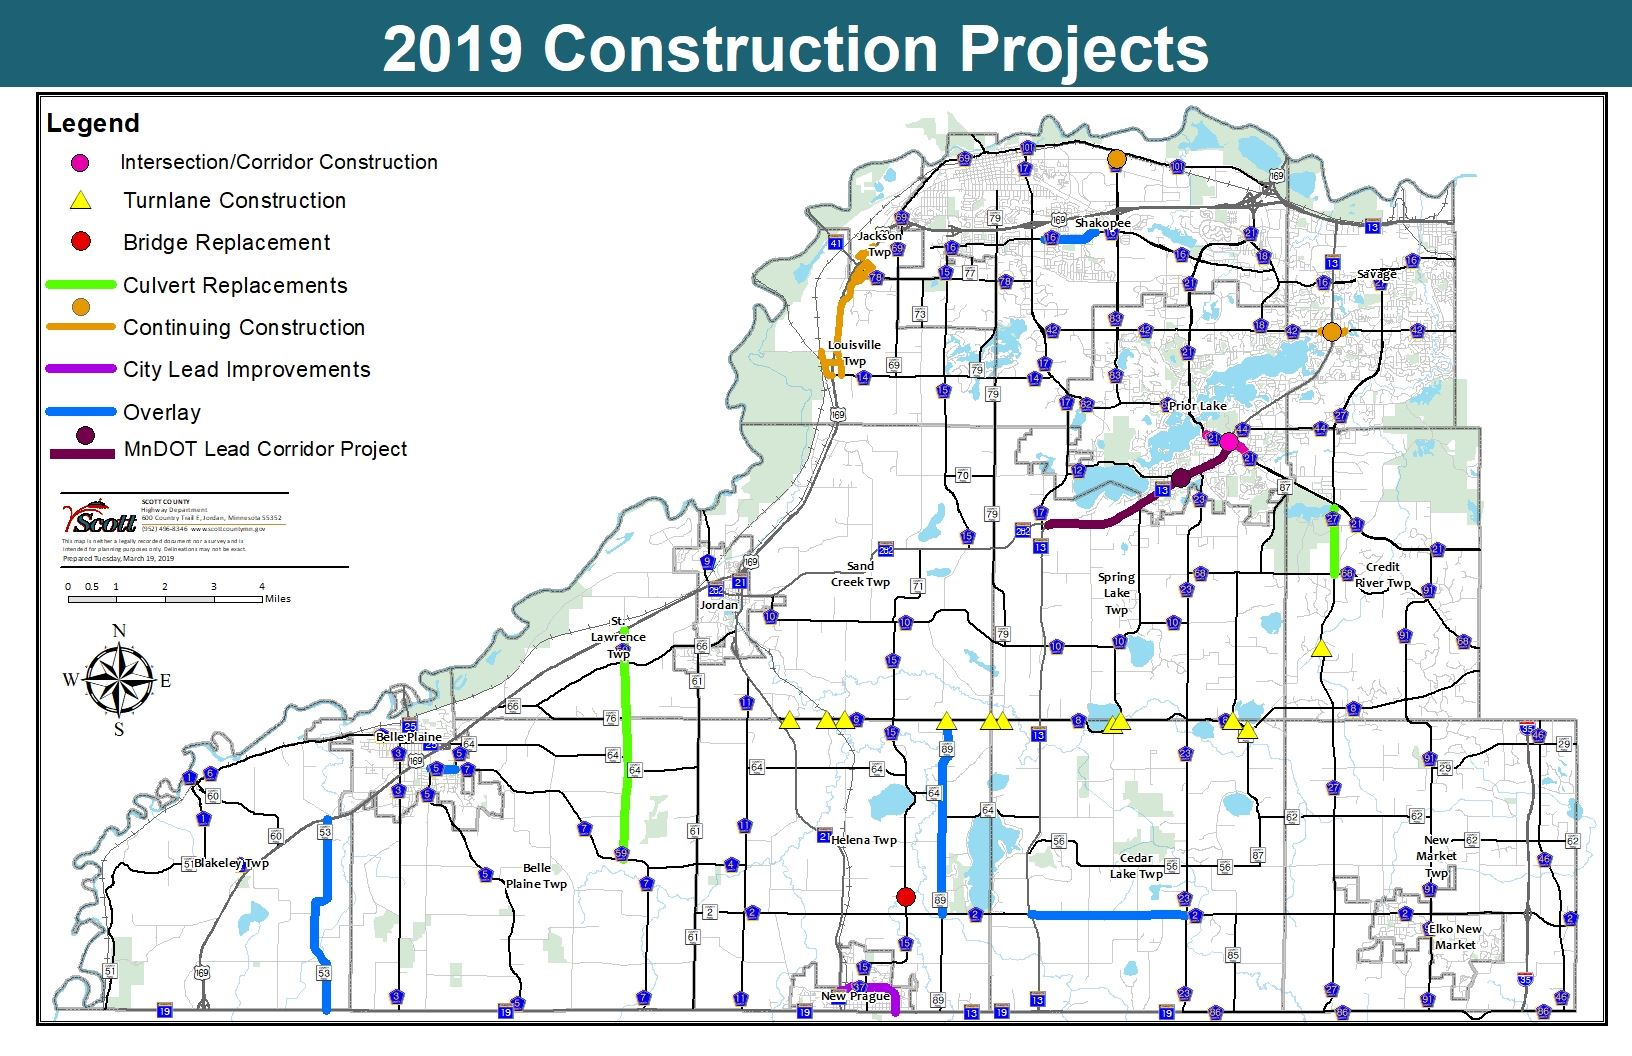 Construction Projects | Scott County, MN on i-70 exit numbers, i-77 ohio map, interstate 40 route map, interstate 70 map, highway 70 map, i-70 exit guide, i 70 indiana map, i-70 st. louis, i-70 west road conditions, i 70 kansas map, e 470 toll map, i-70 travel conditions, i-70 traffic, i-70 vail pass, i-70 utah, route 70 map, i-70 exits in illinois, i-70 highway pittsburgh pa, i 70 ohio map, missouri rest areas map,